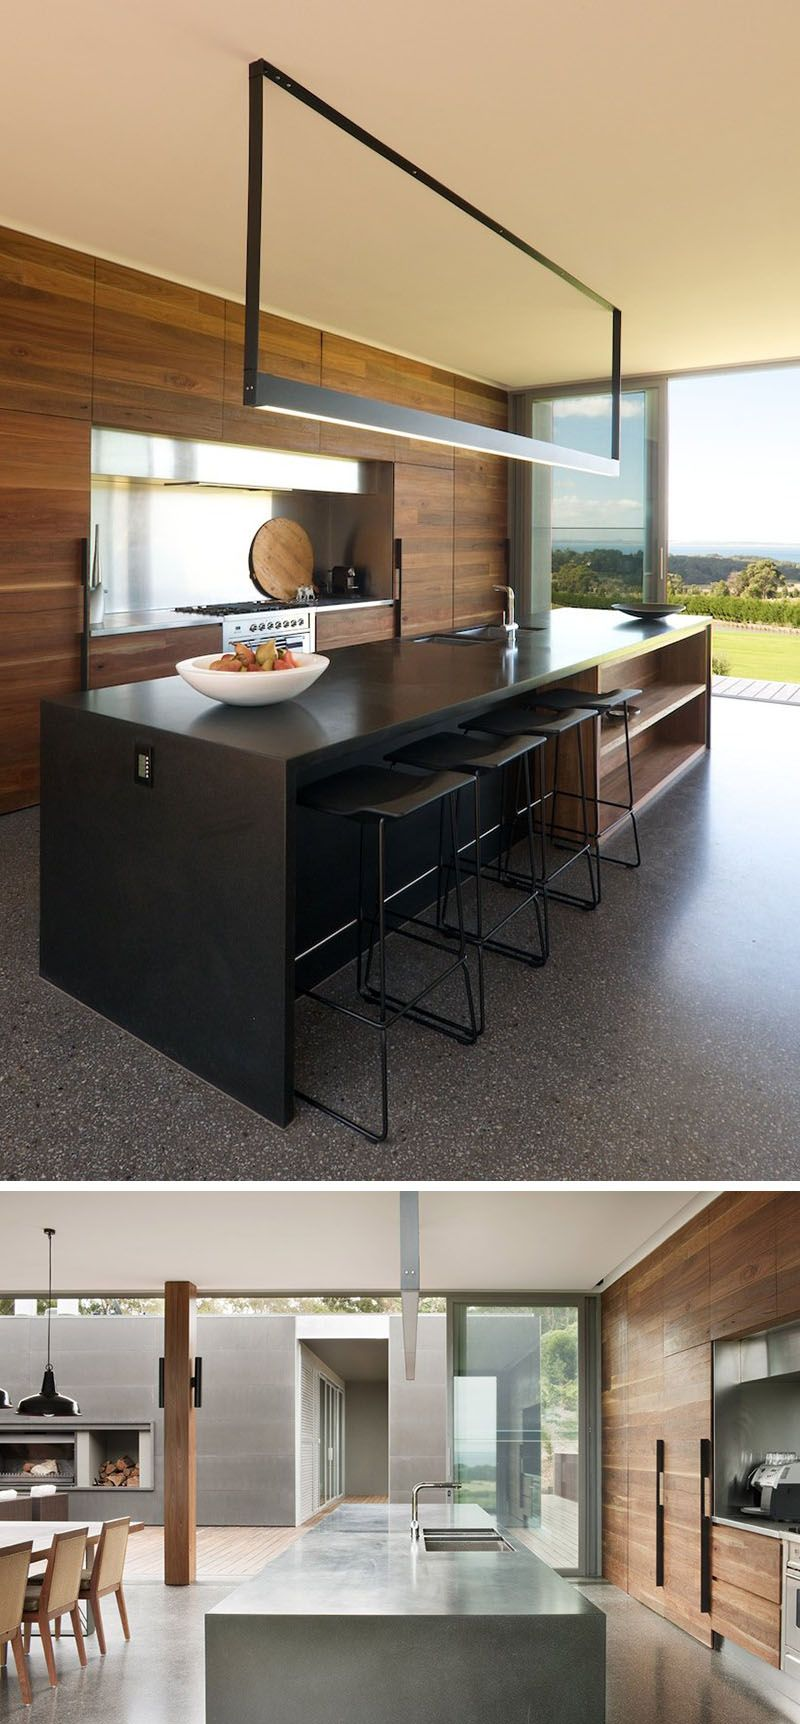 Kitchen Island Lighting Idea - Use One Long Light Instead Of ...